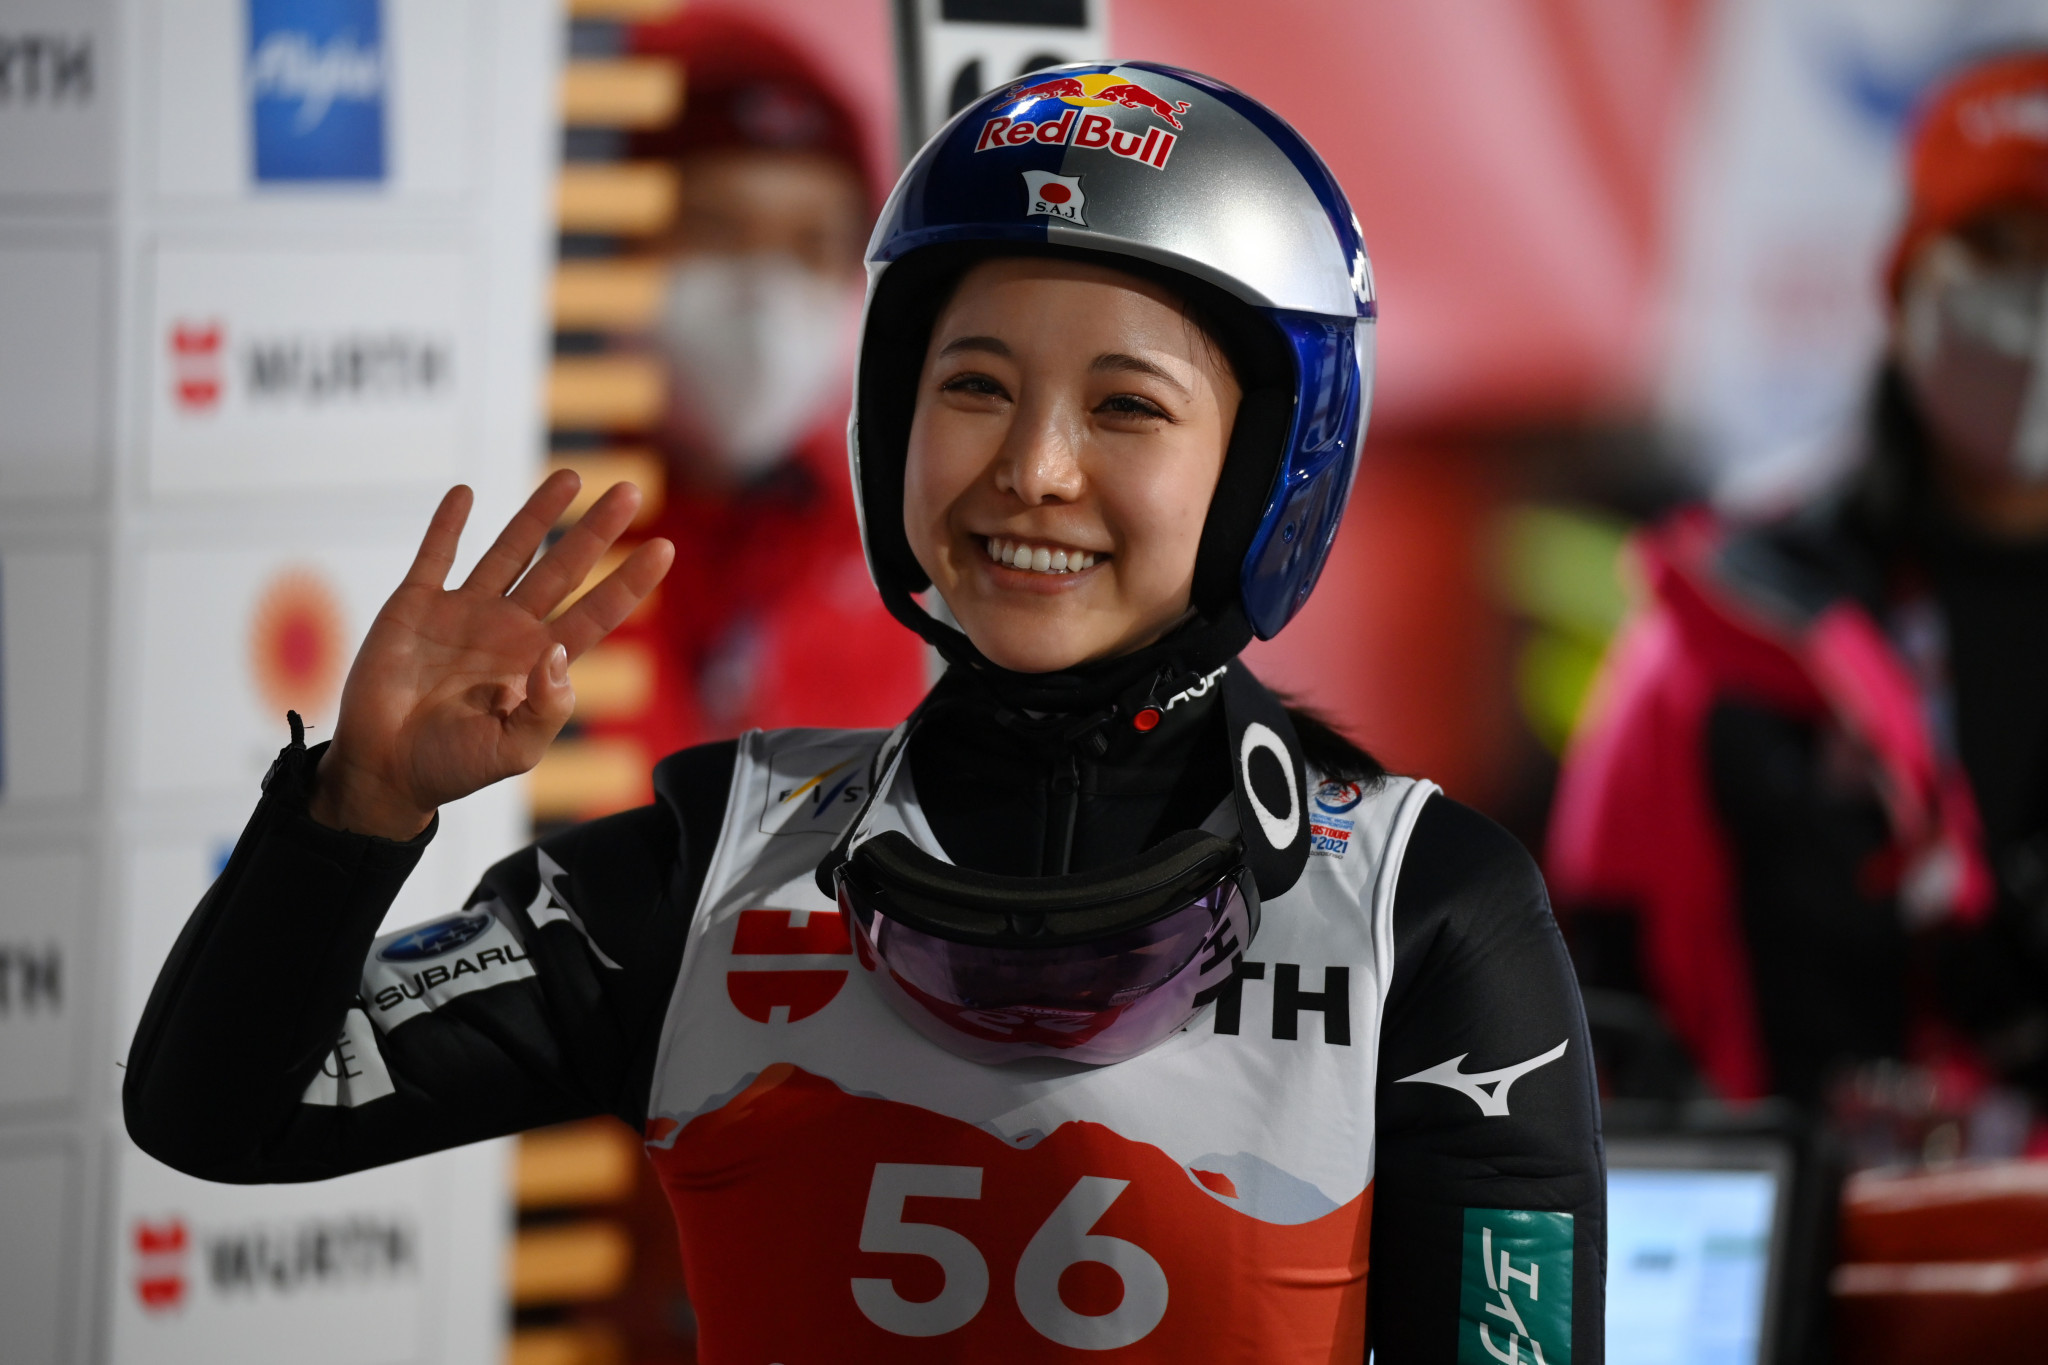 Sara Takanashi will hope to claim the normal hill world title tomorrow ©Getty Images